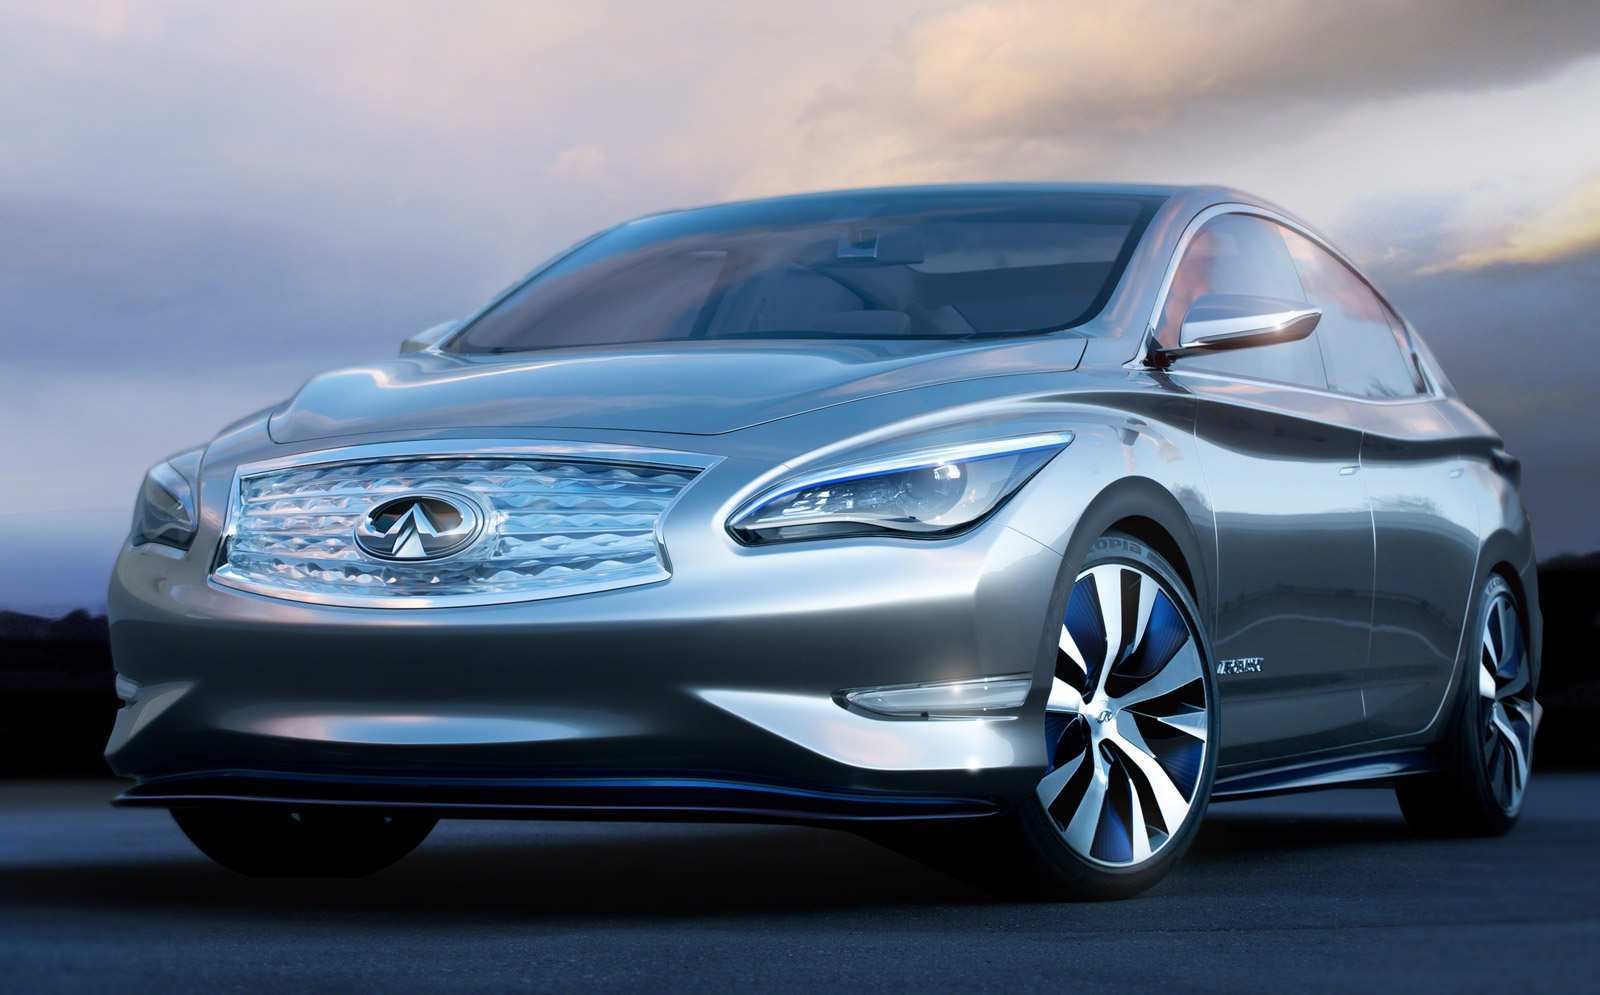 28 Great Infiniti Cars 2020 Review by Infiniti Cars 2020